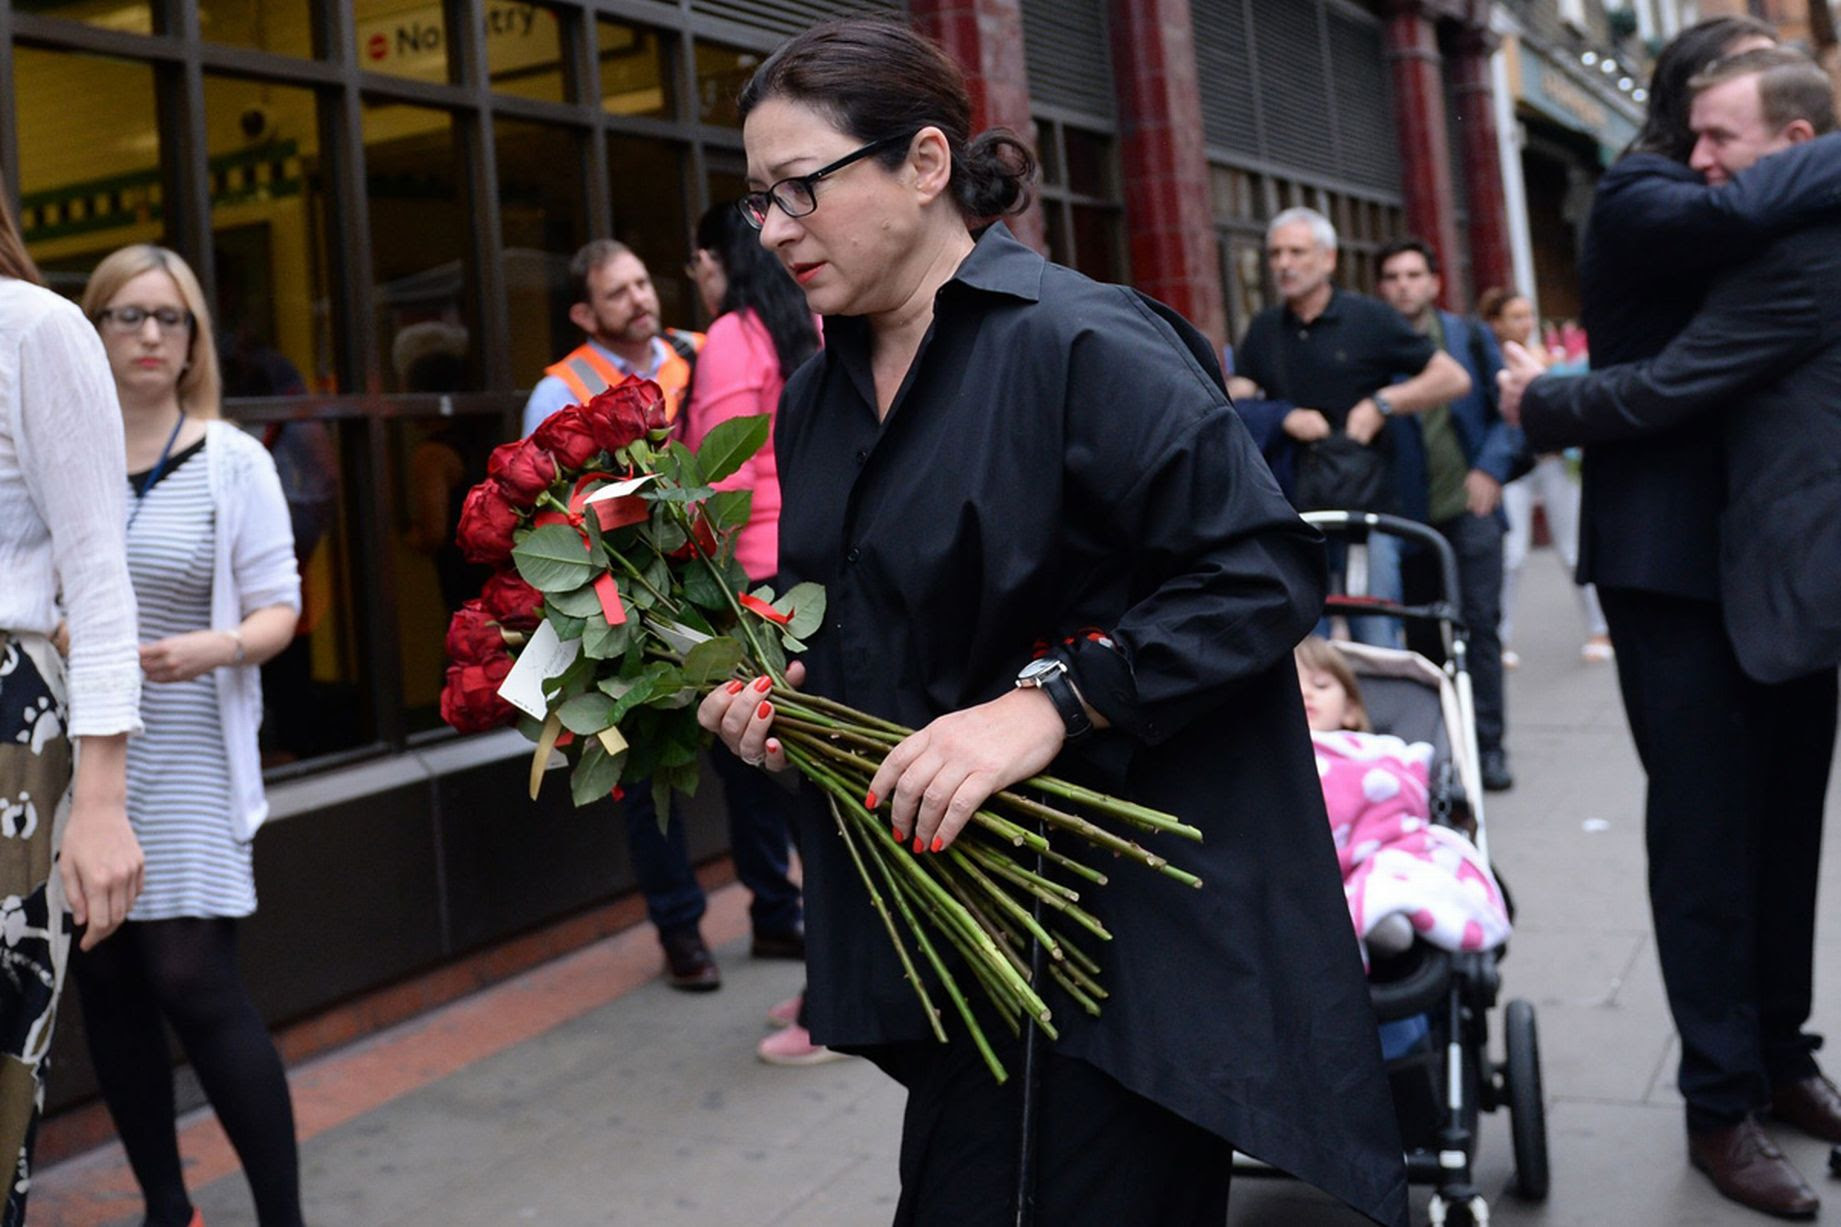 7/7 survivor Gill Hicks (centre) arrives with flowers at Russell Square tube station, London, as Britain remembers the July 7 attacks amid a welter of warnings about the enduring and changing threat from terrorism a decade on.